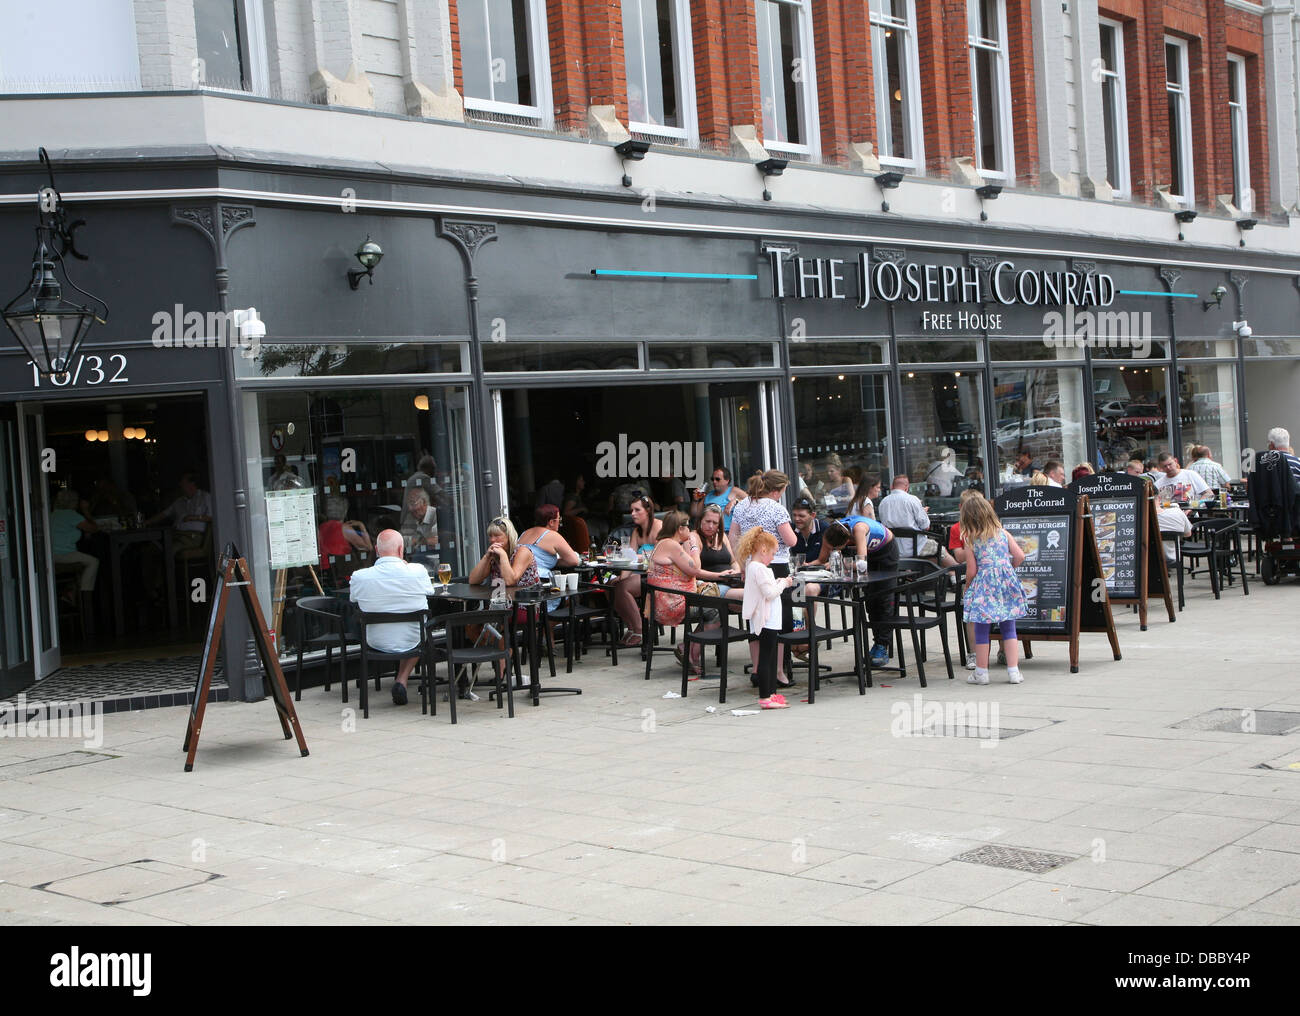 People sitting outside the Joseph Conrad wetherspoons pub Lowestoft Suffolk England in converted shop building - Stock Image